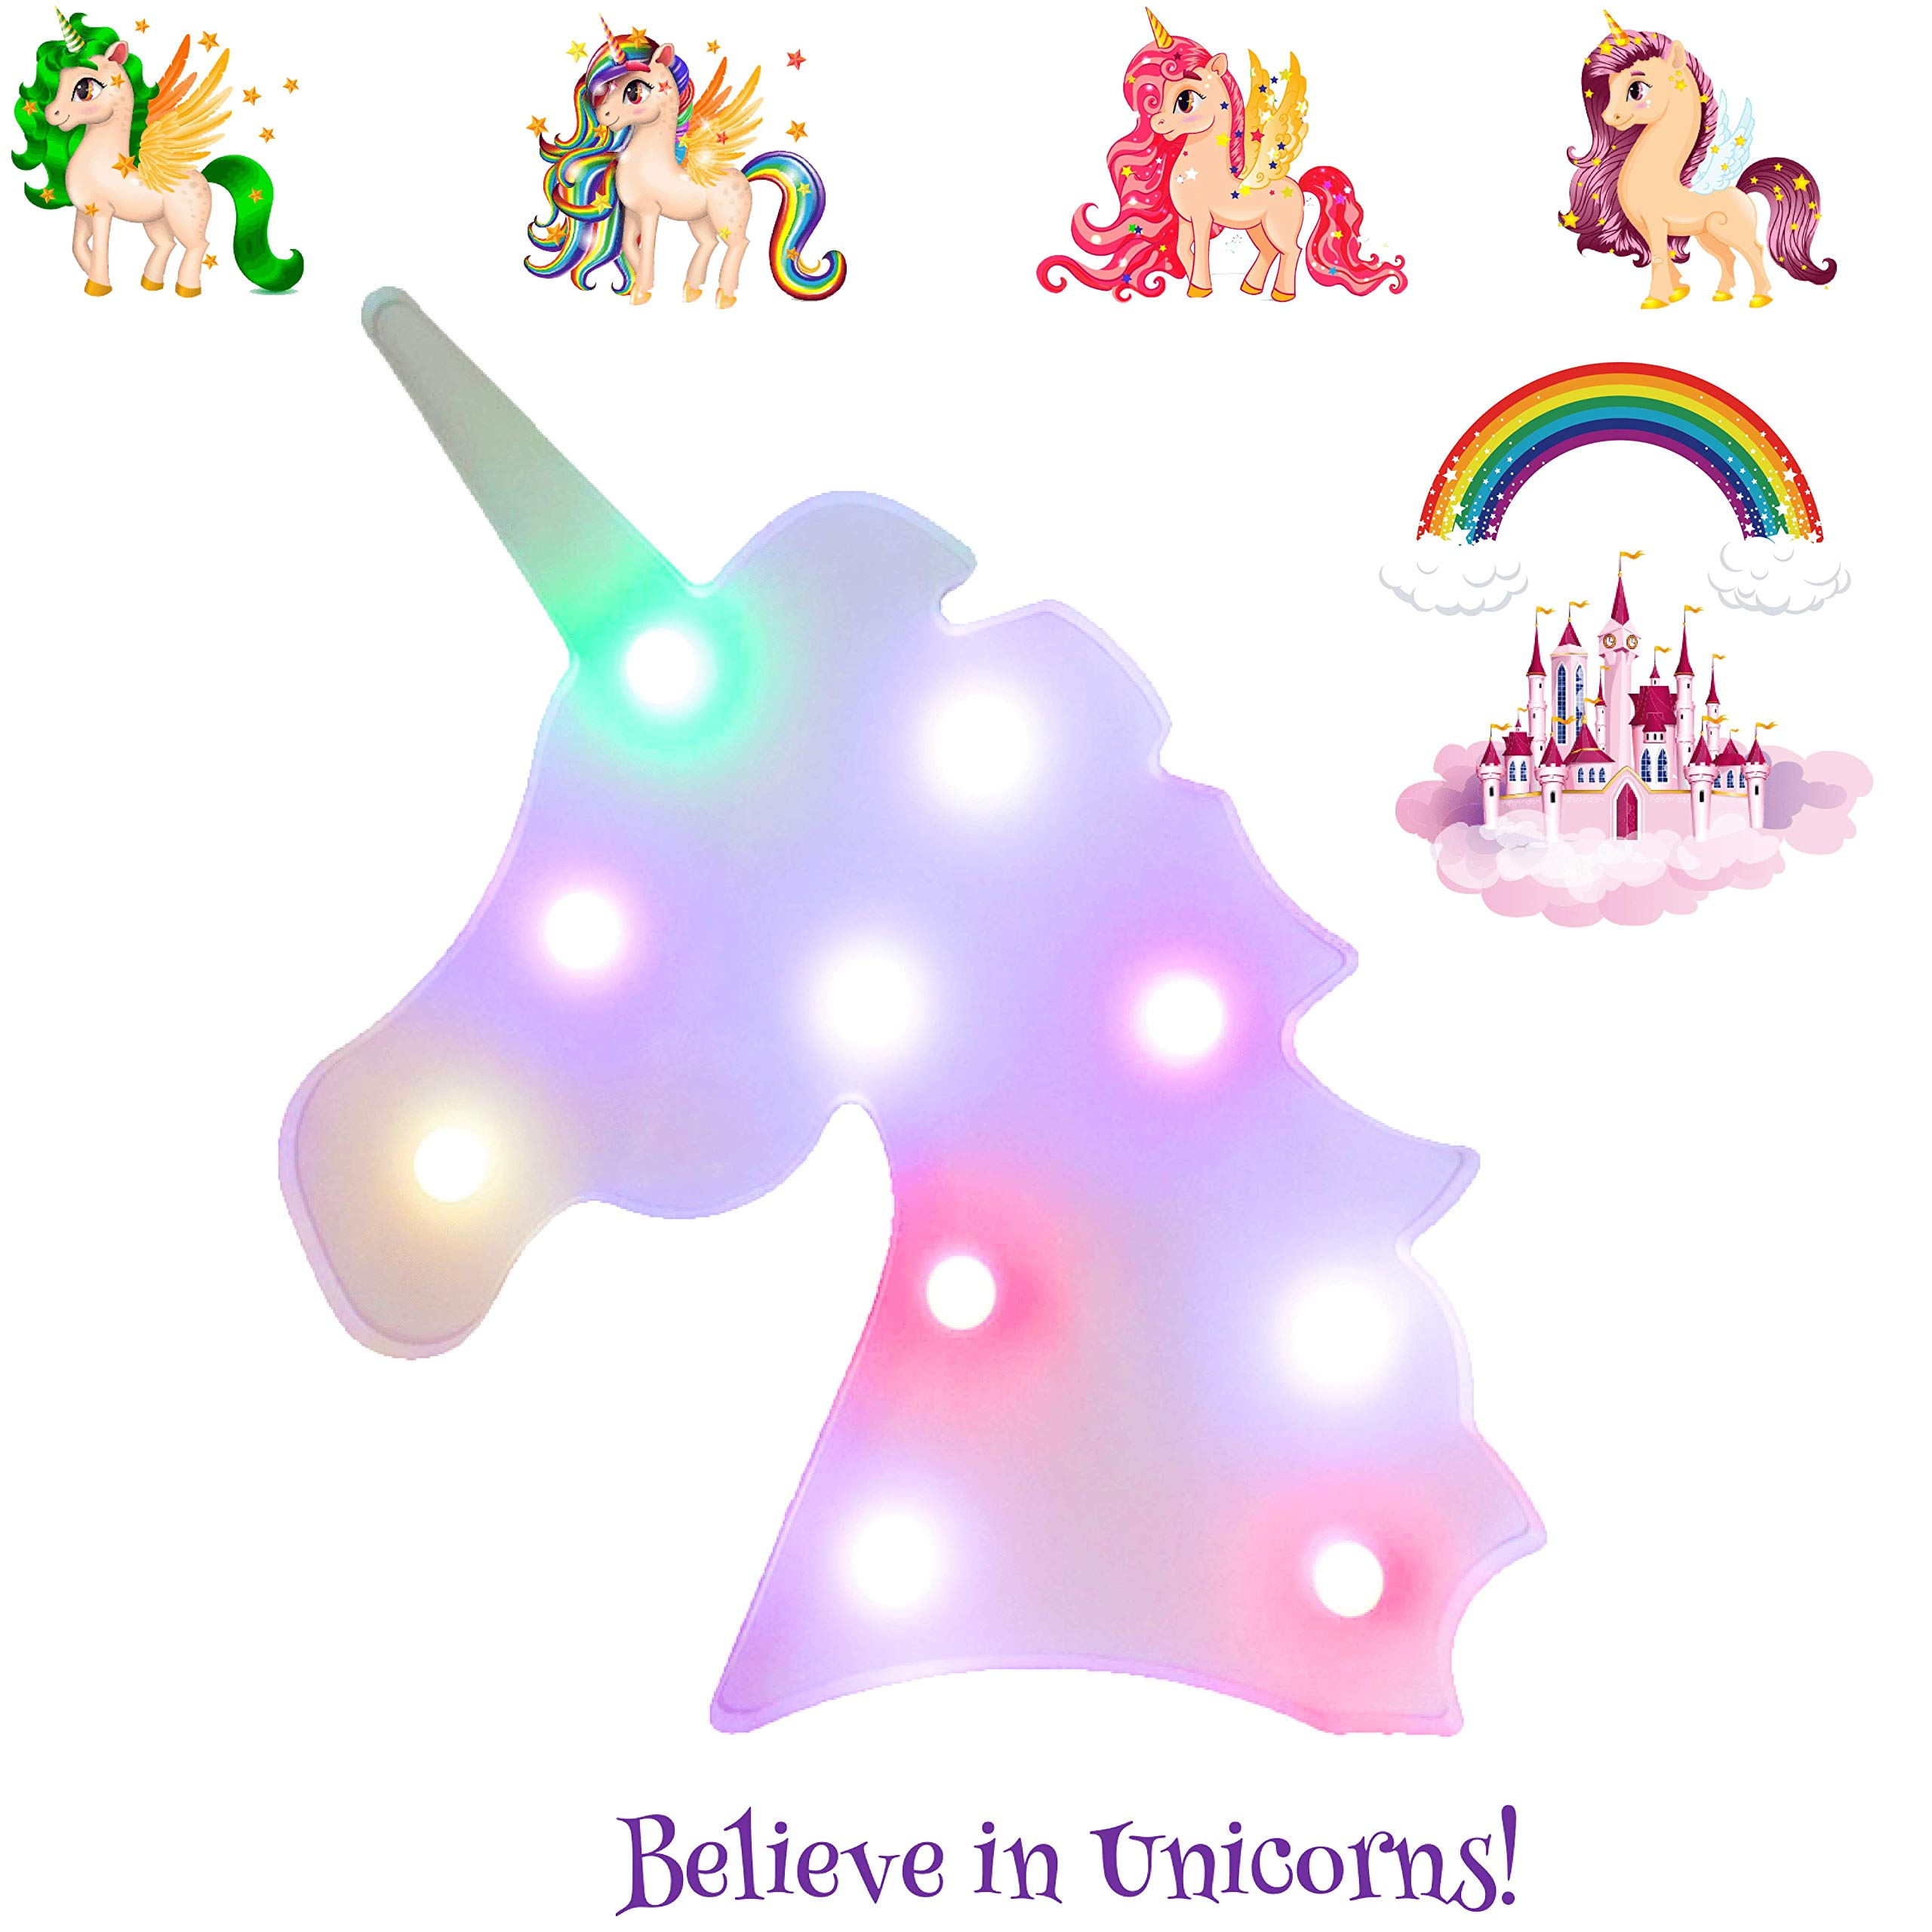 Unicorn Light for Girls Baby Kids - Includes 7 Decal Wall Stickers Unicorn Poem & Ebook - Color Changing Vibrant Lamp Emits Rainbow Light - Unicorn Decor Nightlight for Birthday Party Bedroom Nursery